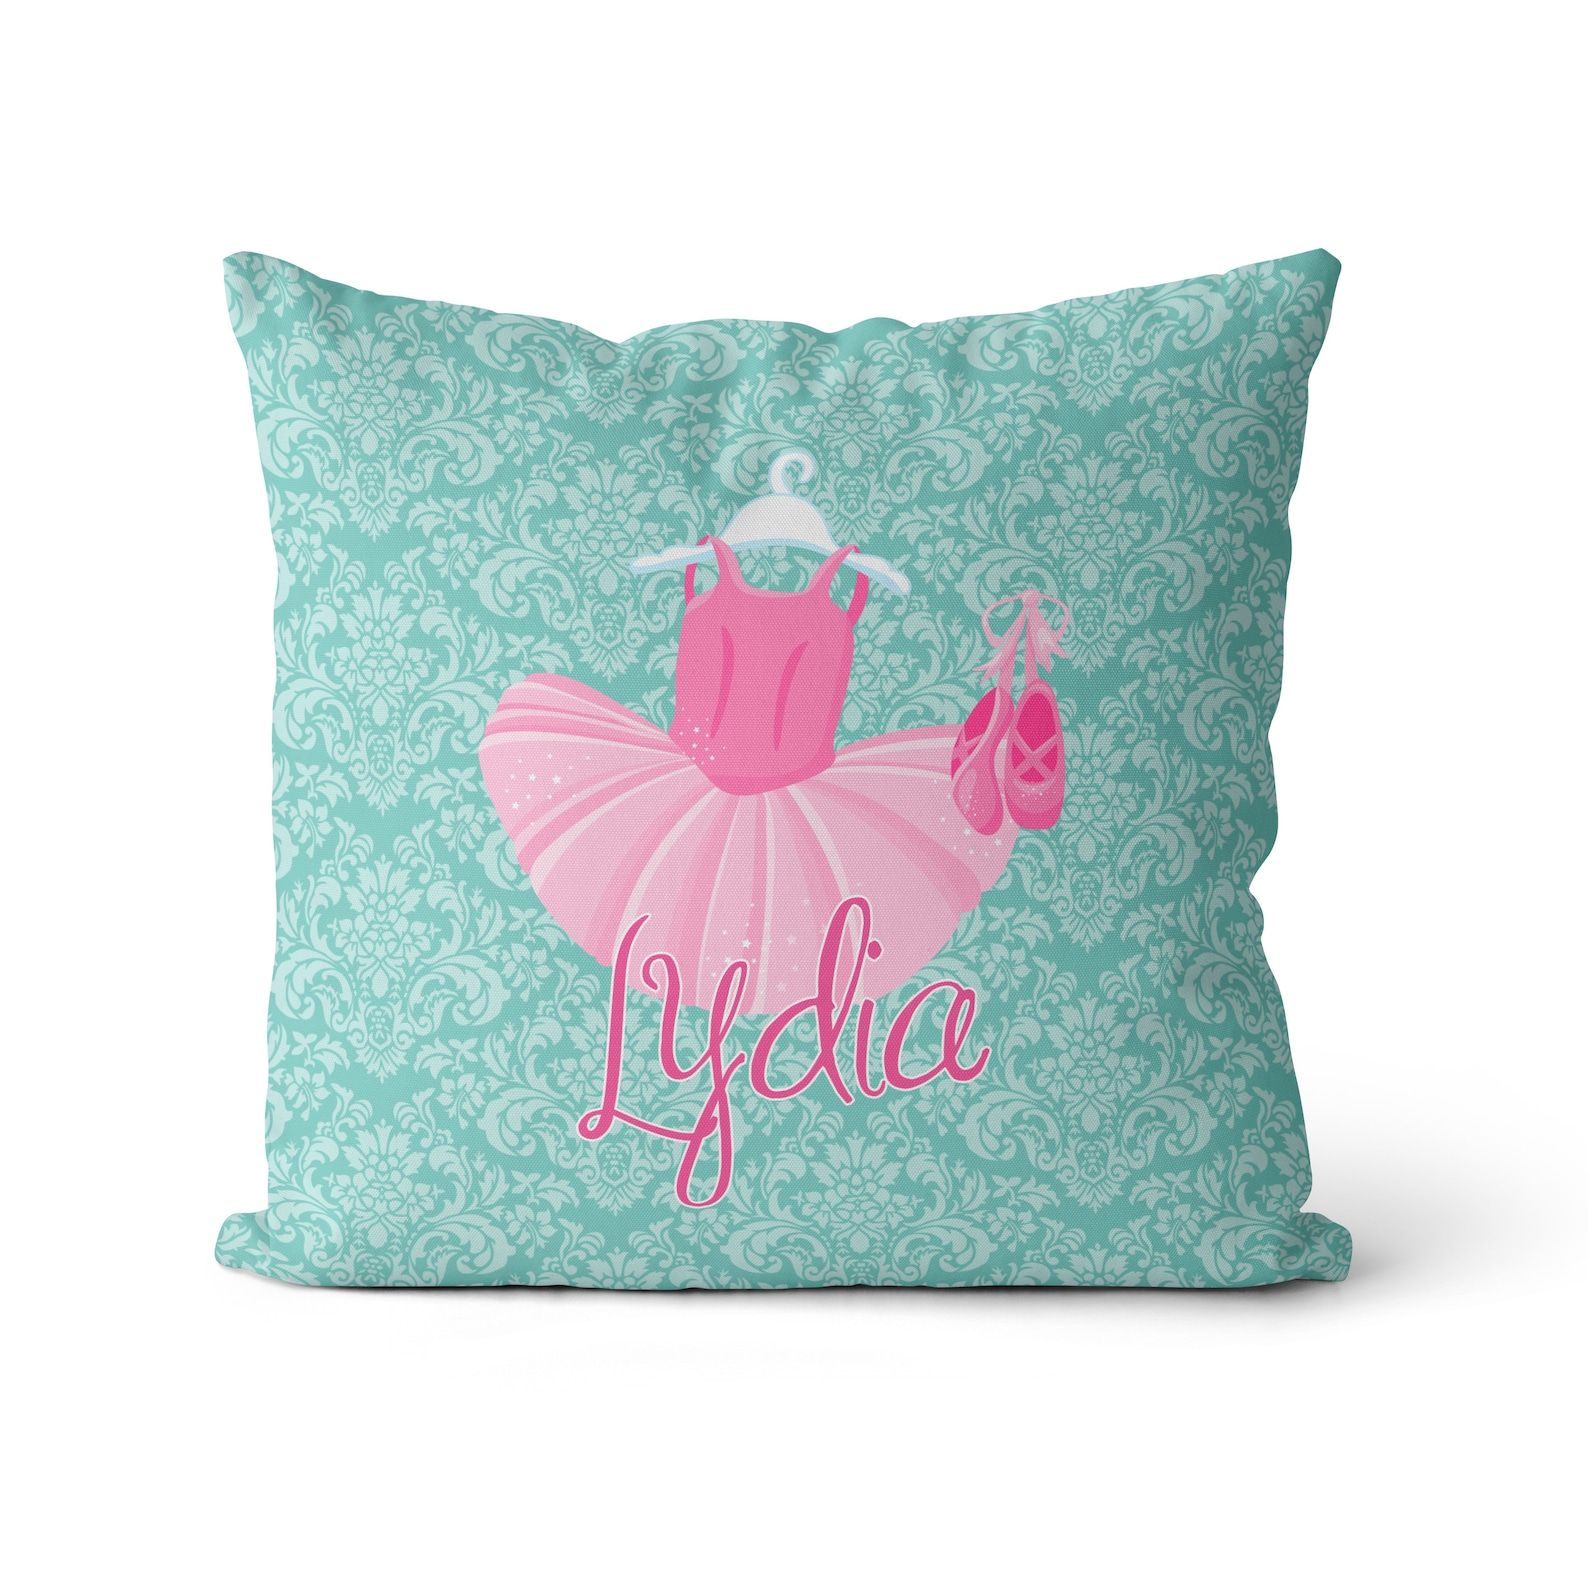 ballet pillow case - turquoise damask ballerina pillow, pink tutu, ballet shoes, ballet personalized throw pillow - kids name gi